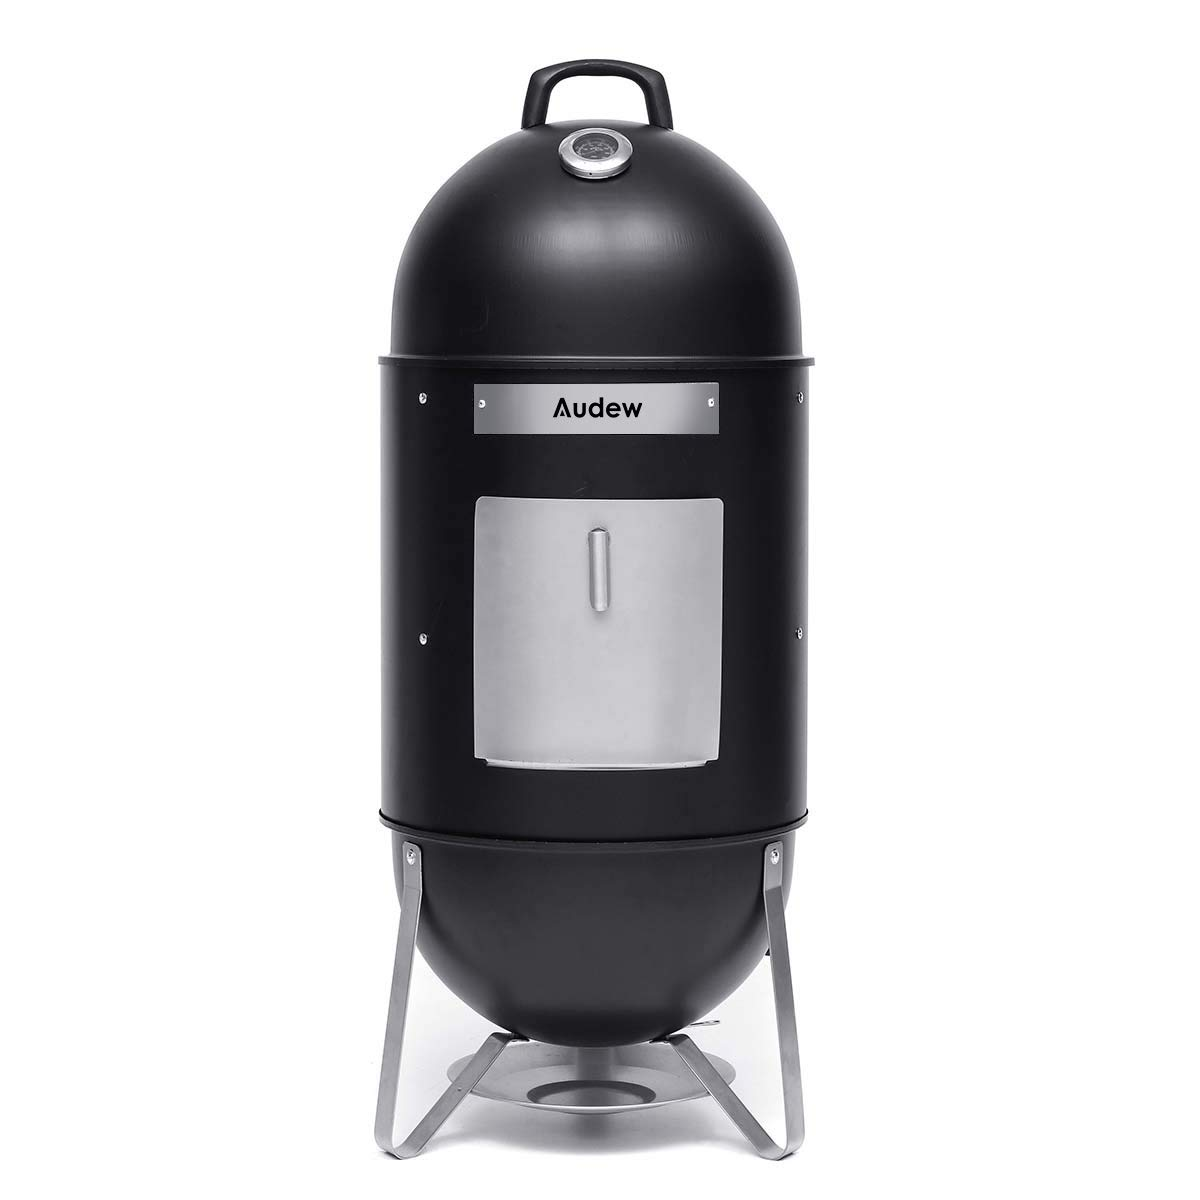 Audew Charcoal Smoker Grill 18-Inch Vertical Combo Water Grill BBQ Heat Control Outdoor Picnic Camping by Audew